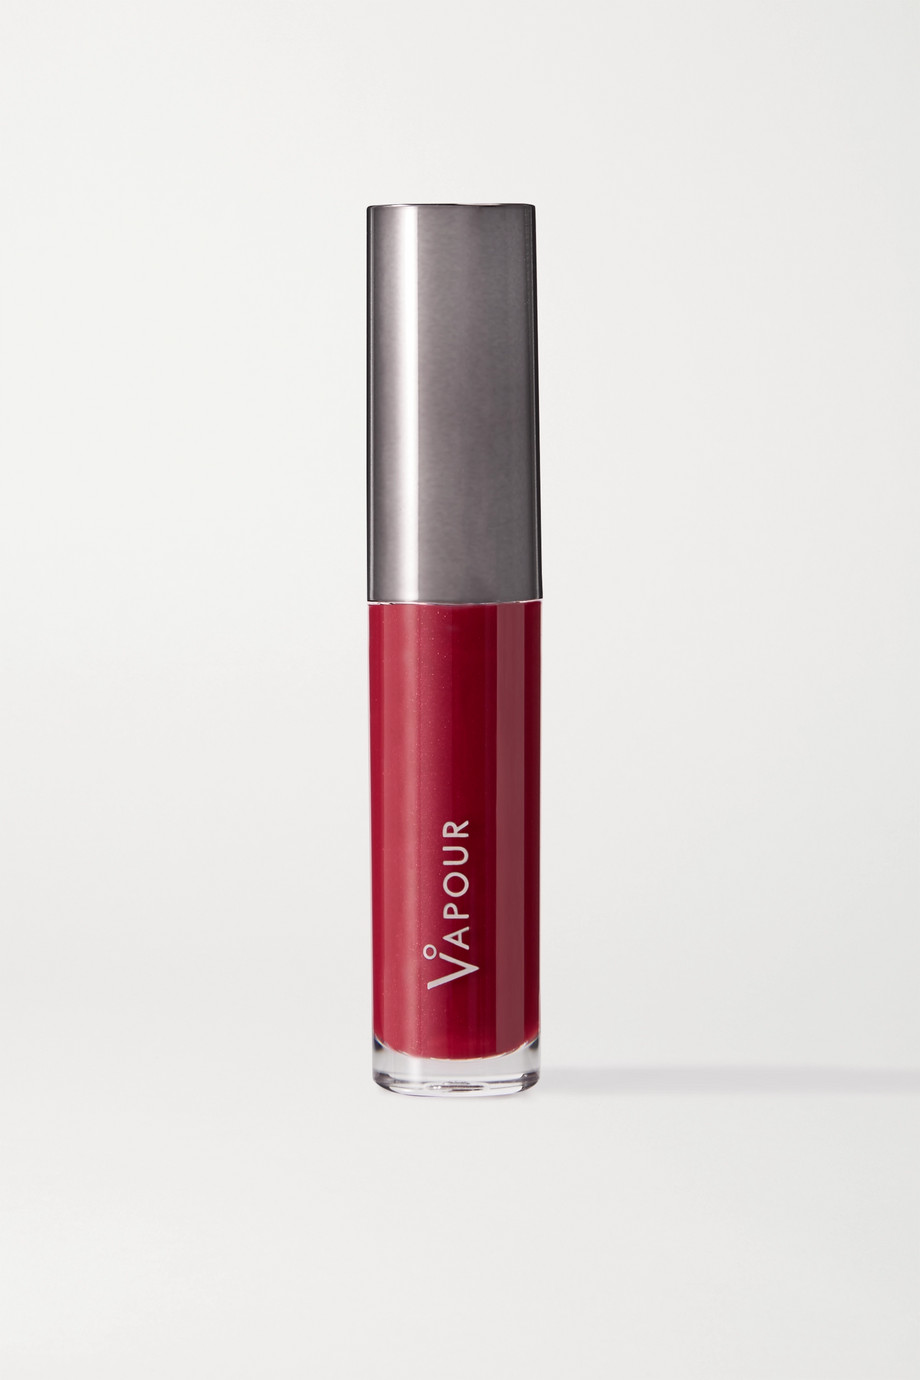 Vapour Beauty Elixir Gloss - Amor